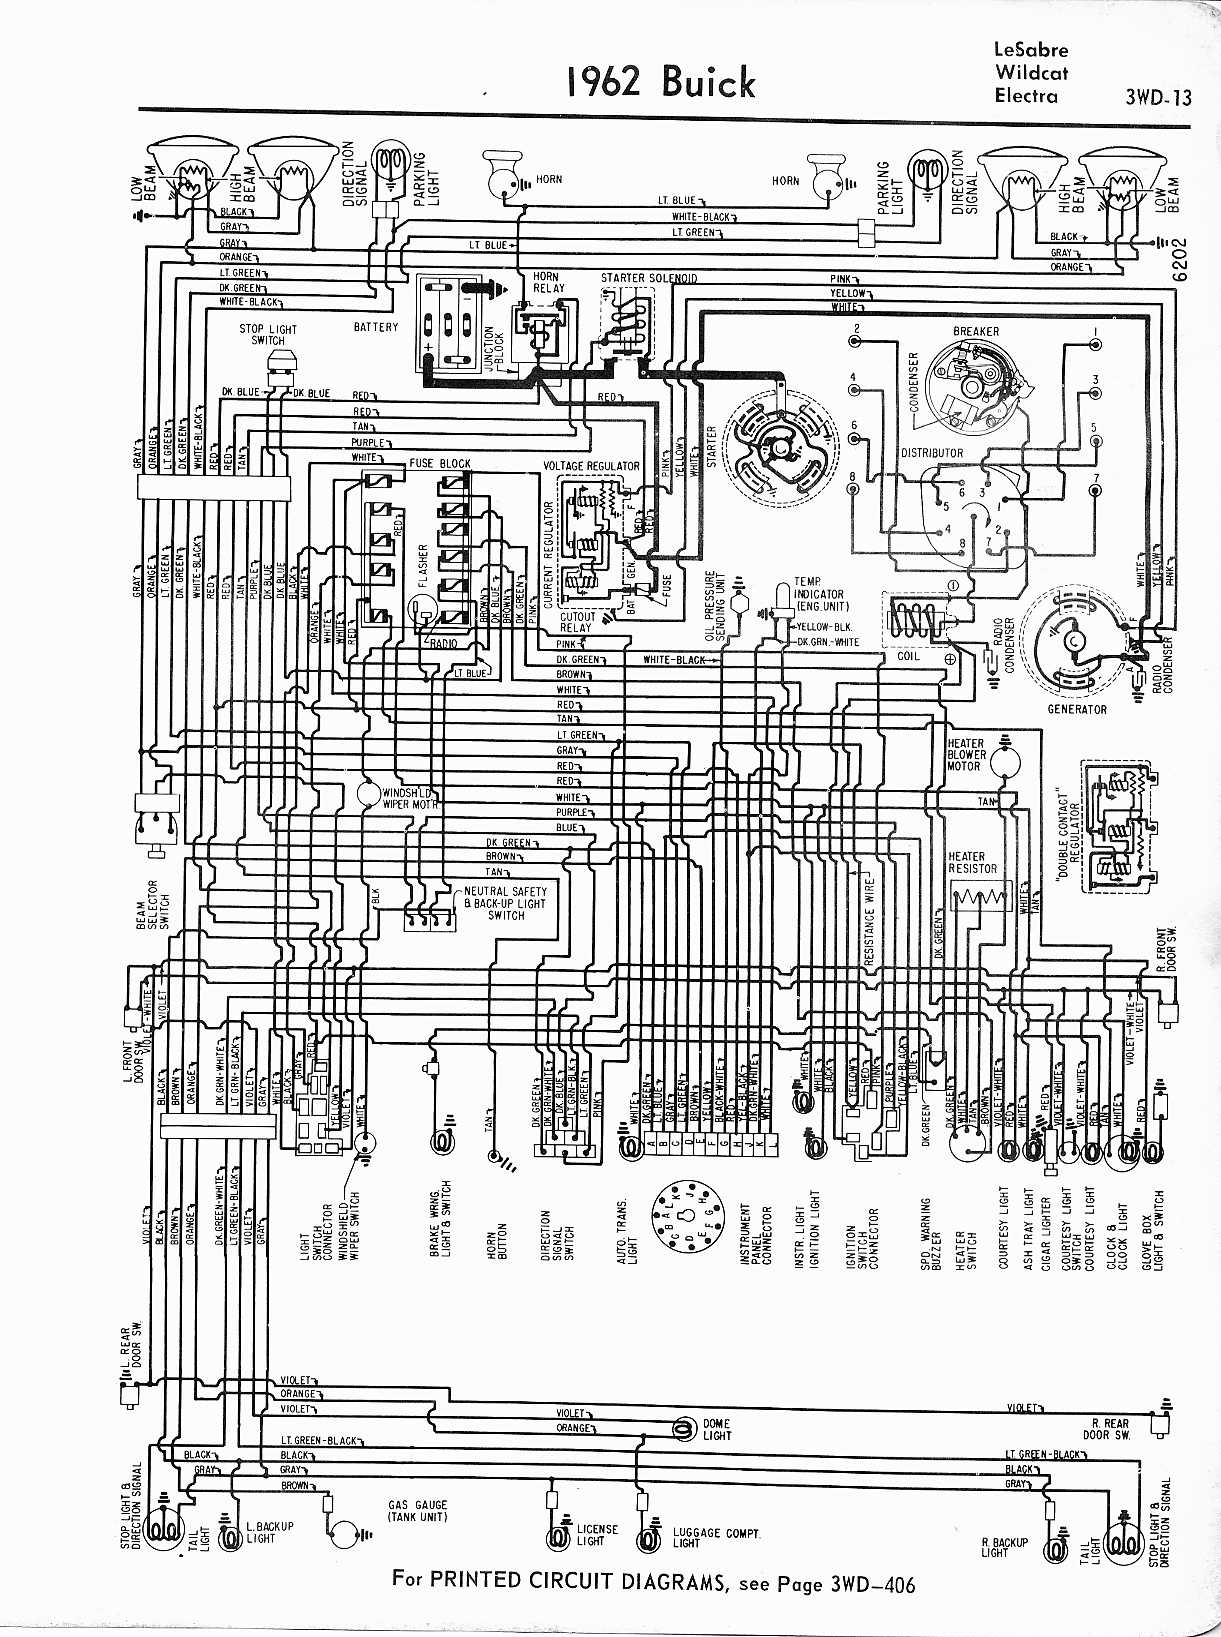 1962 Gm Windshield Wiper Wiring Diagram Will Be A Chevy Motor Buick Diagrams 1957 1965 Rh Oldcarmanualproject Com 1964